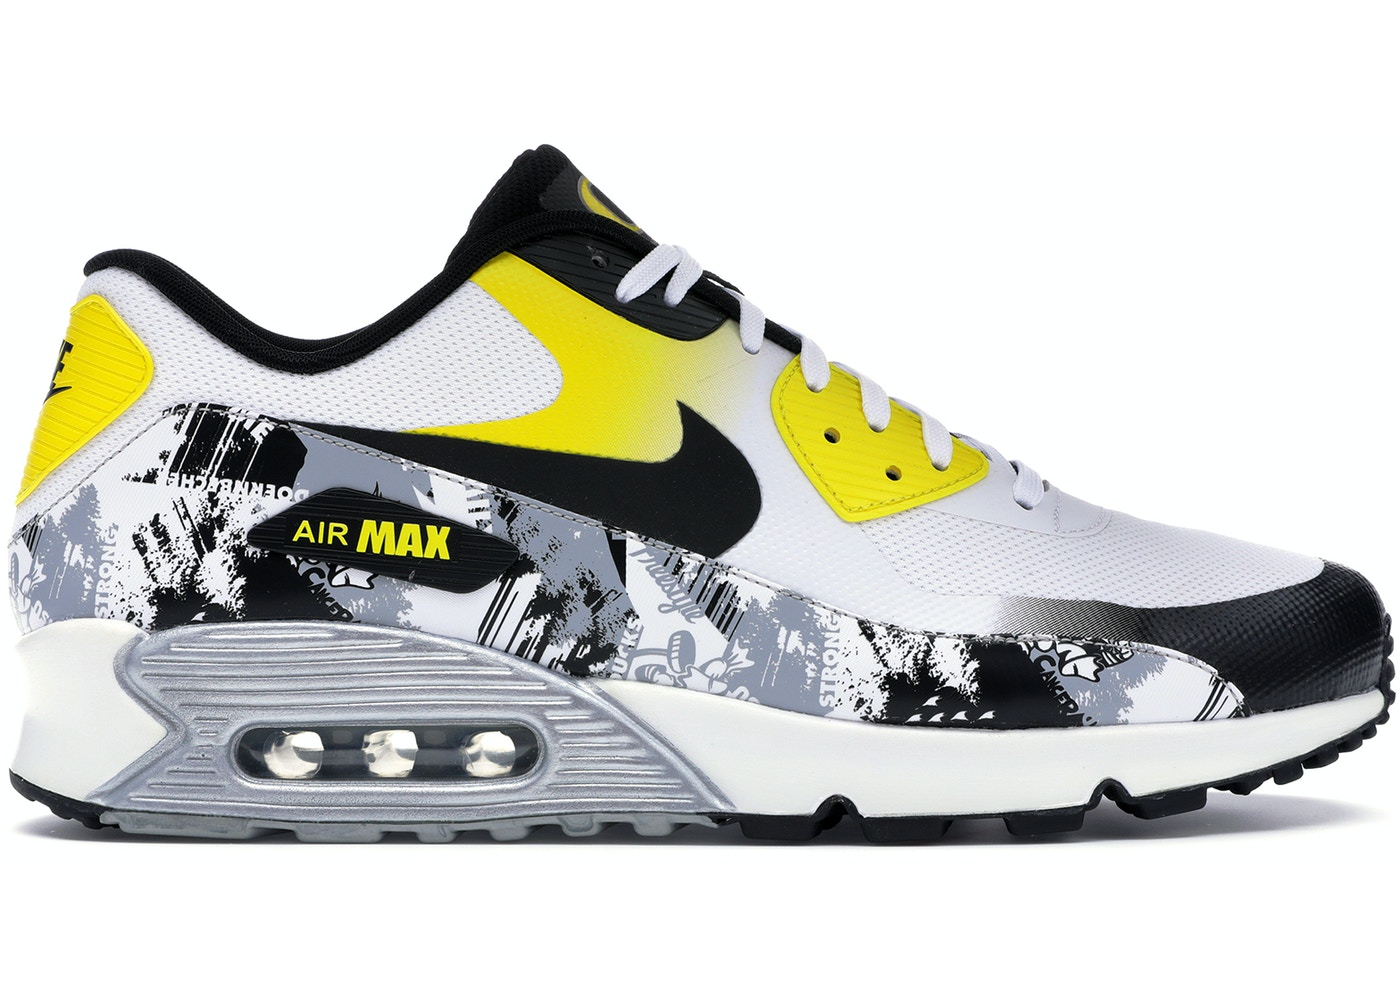 9fc781a0a7 Air Max 90 Ultra 2.0 Doernbecher Oregon Ducks - AH6830-100